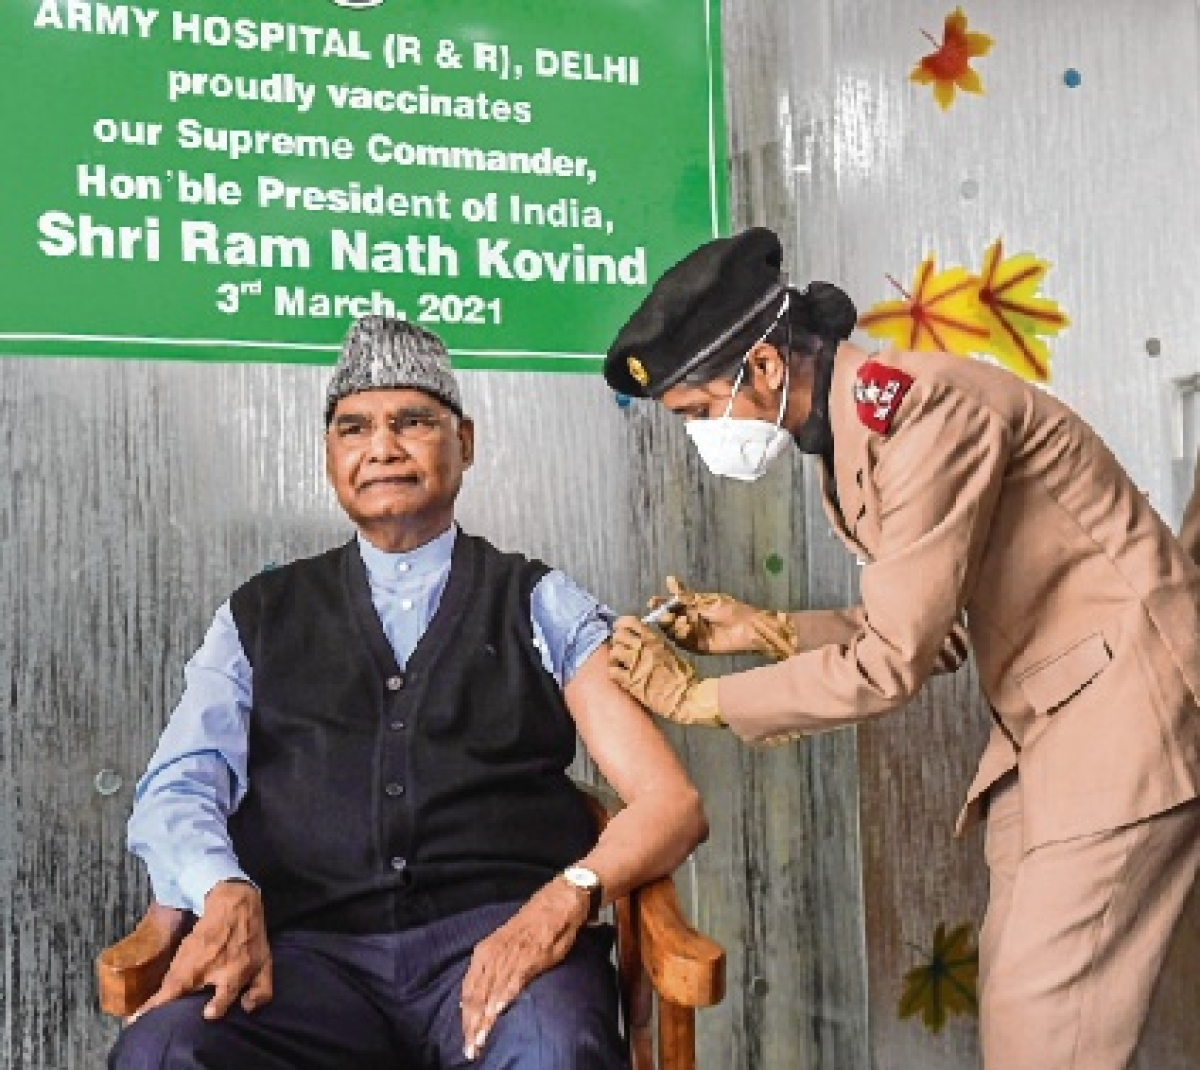 First citizen takes first shot of Covid-19 vaccine